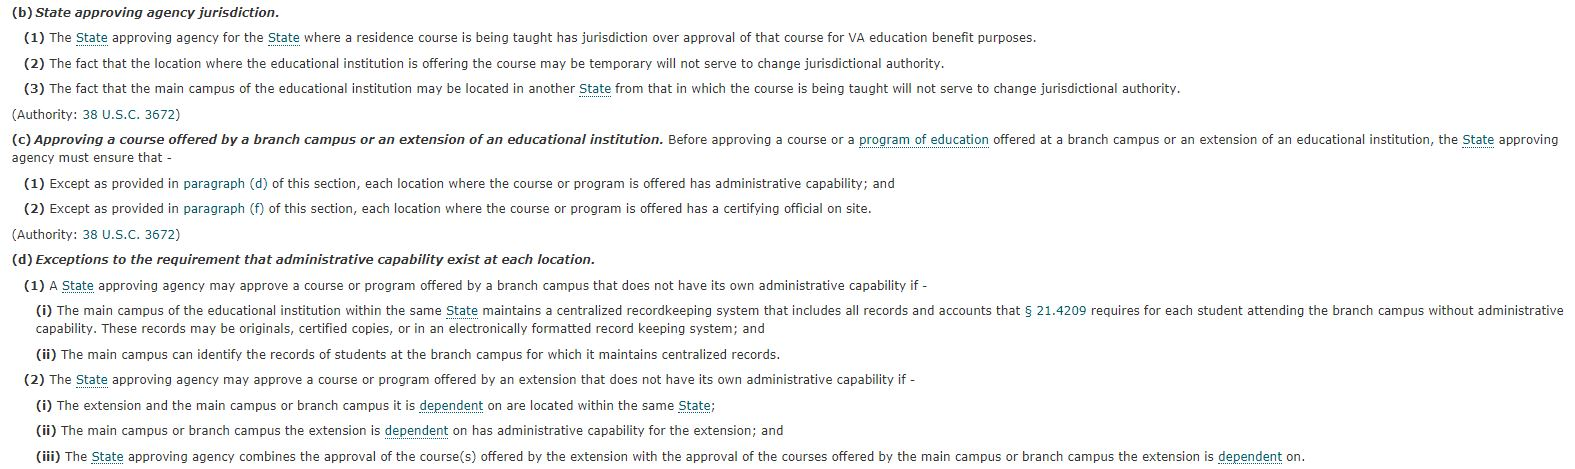 (b) State approving agency jurisdiction. (1) The state approving agency for the state where a residence course is being taught has jurisdiction over approval of that course for VA education benefit purposes. (2) The fact that the location where the educational institute is offering the course may be temporary will not serve to change jurisdictional authority. (3) The fact that the main campus of the educational institution may be located in another state from that in which the course is being taught will not serve to change jurisdictional authority. Authority: 38 U.S.C. 3672 (c) Approving a course offered by a branch campus or an extension of an educational institution. Before approving a course or a program of education offered at a branch campus or an extension of an educational institution, the state approving agency must ensure that (1) Except as provided in paragraph (d) of this section, each location where the course or program is offered has administrative capability; and (2) Except as provided in paragraph (f) of this section, each location where the course or program is offered has a certifying official on site. Authority: 38 U.S.C. 3672 (d) Exceptions to the requirement that administrative capability exist at each location. (1) A state approving agency may approve a course or program offered by a branch campus that does not have its own administrative capability if – (i) The main campus of the educational institution within the same state maintains a centralized recordkeeping system that includes all records and accounts that 21.4209 requires for each student attending the branch campus without administrative capability. These records may be originals, certified copies, or in an electronically formatted record keeping system; and (ii) The main campus can identify the records of students at the branch campus for which it maintains centralized records. (2) The state approving agency may approve a course or program offered by an extension that does not have its own administrative capability if – (i) The extension and the main campus or branch campus it is dependent on are located within the same state; (ii) The main campus or branch campus the extension is dependent on has administrative capability for the extension; and (iii) The state approving agency combines the approval of the course(s) offered by the extension with the approval of the courses offered by the main campus or branch campus the extension is dependent on.